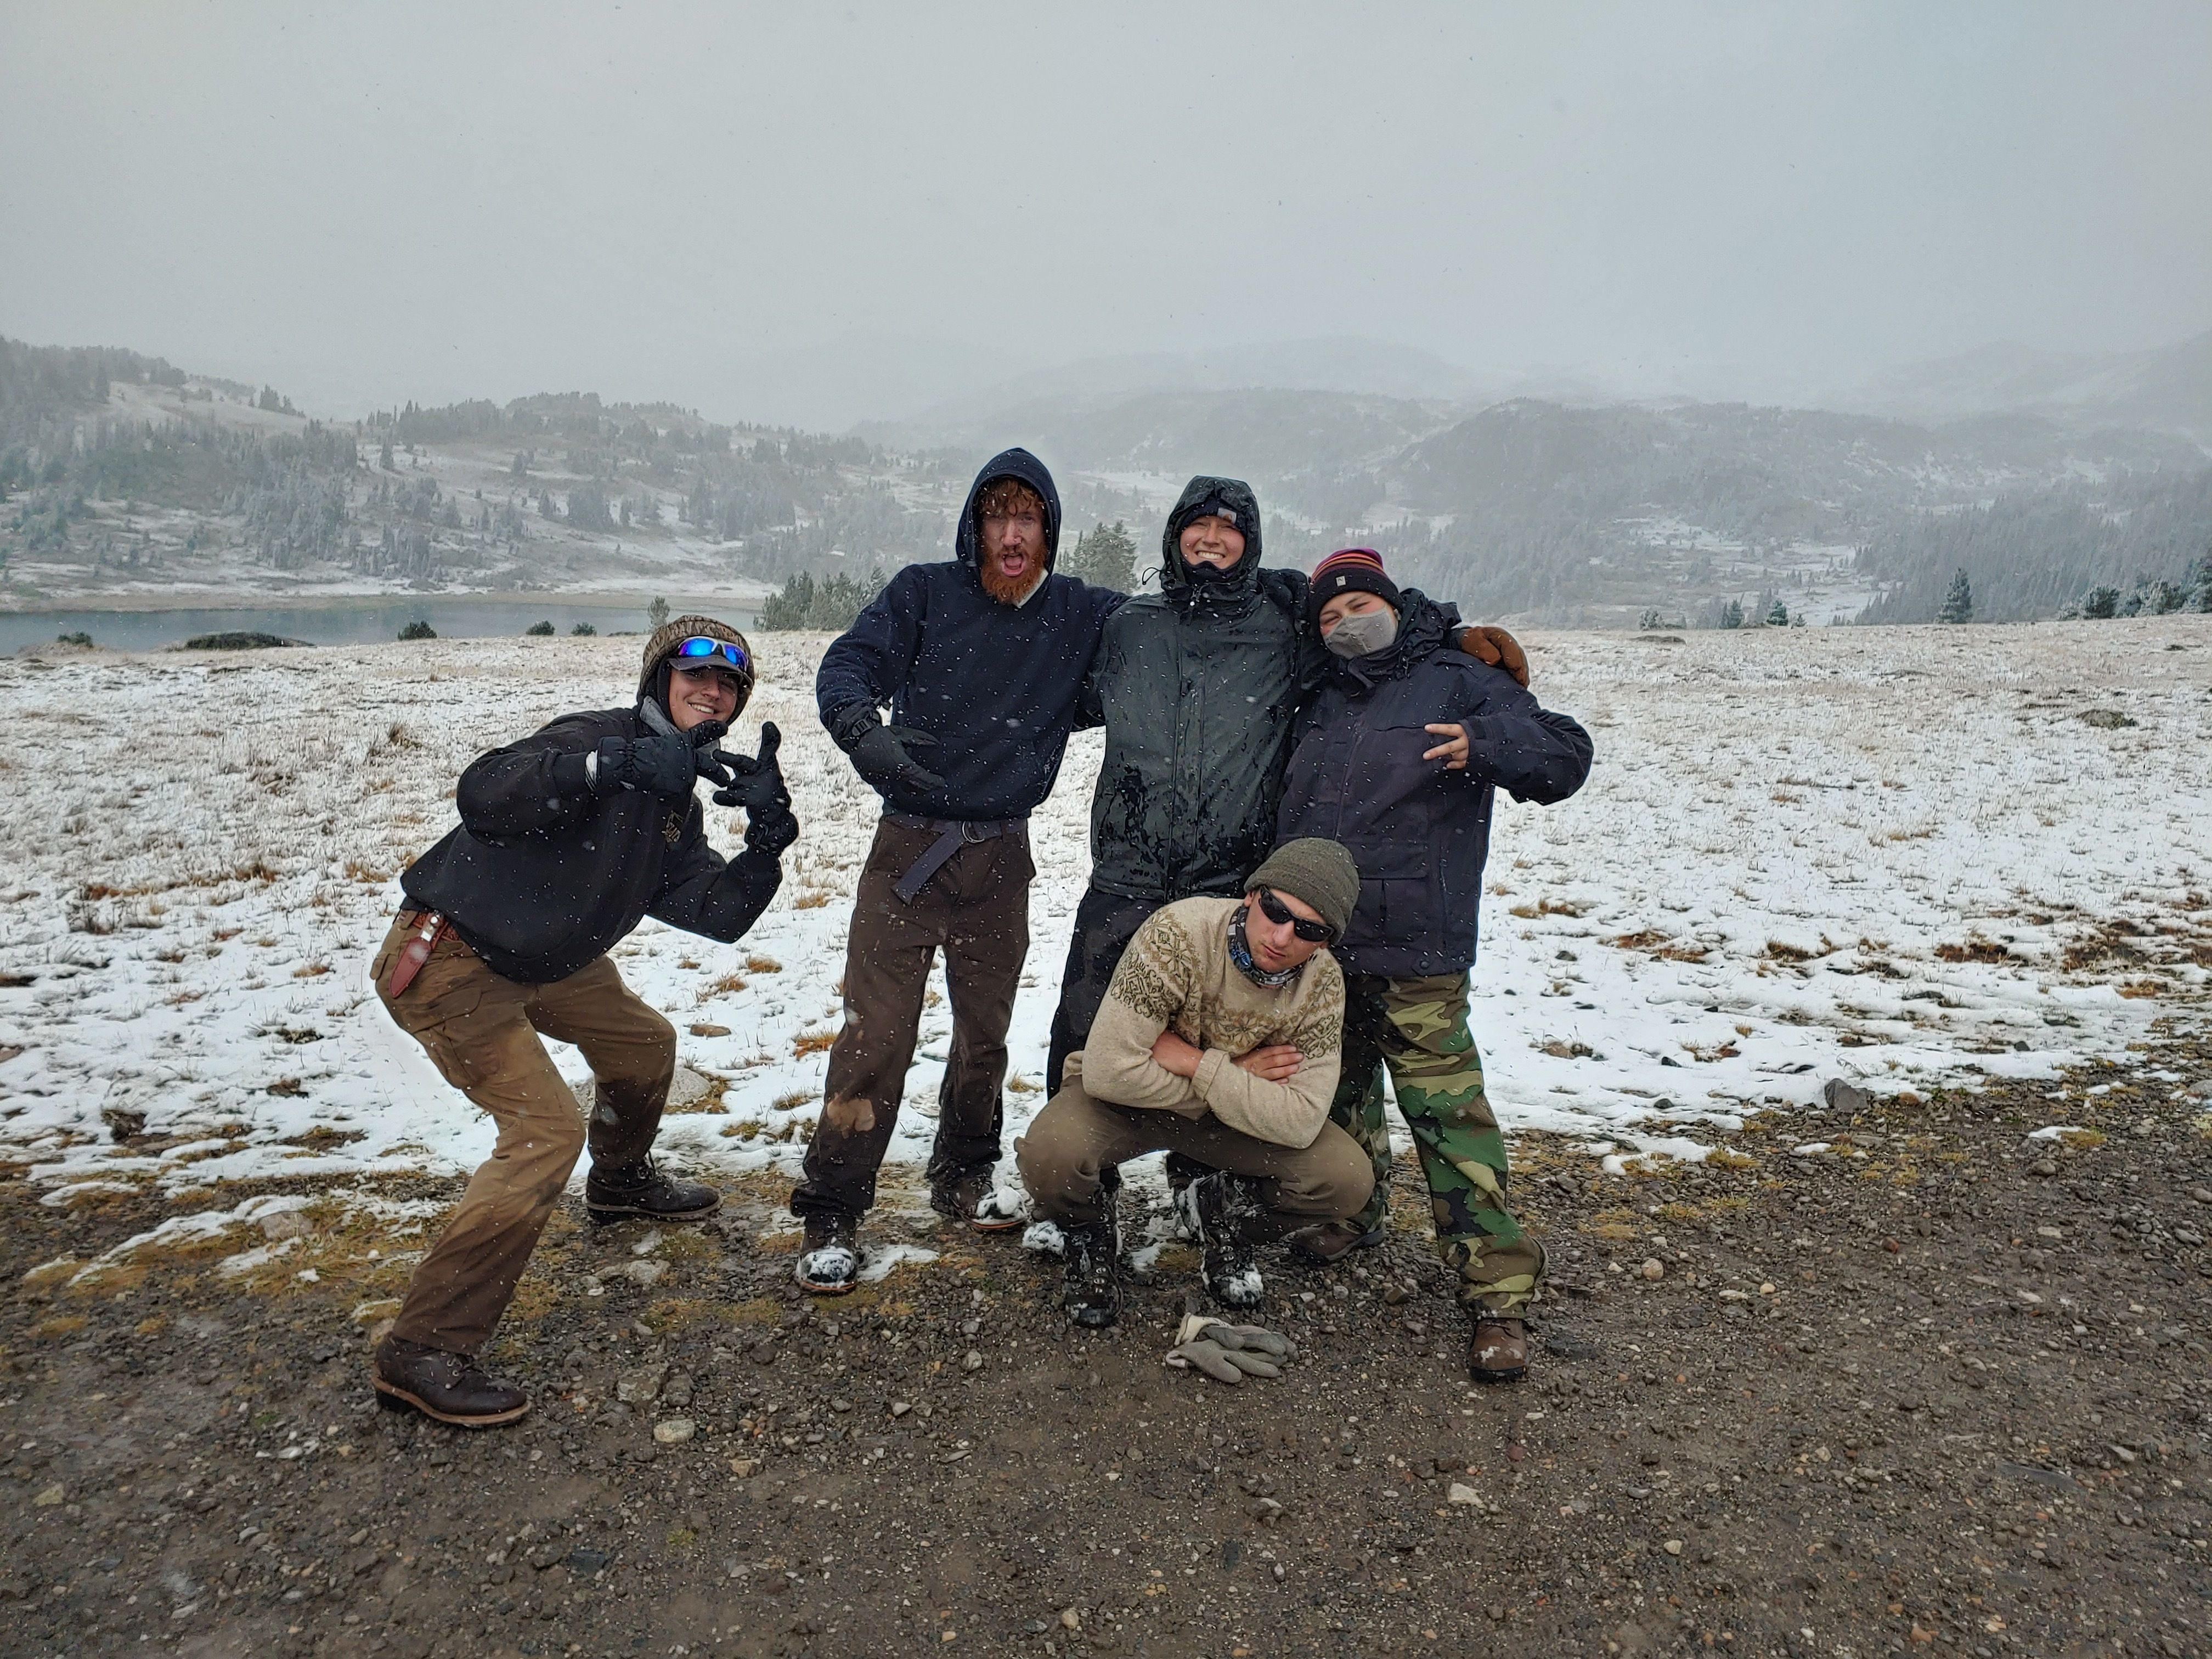 A crew poses, all bundled up in front of a snowy lake.